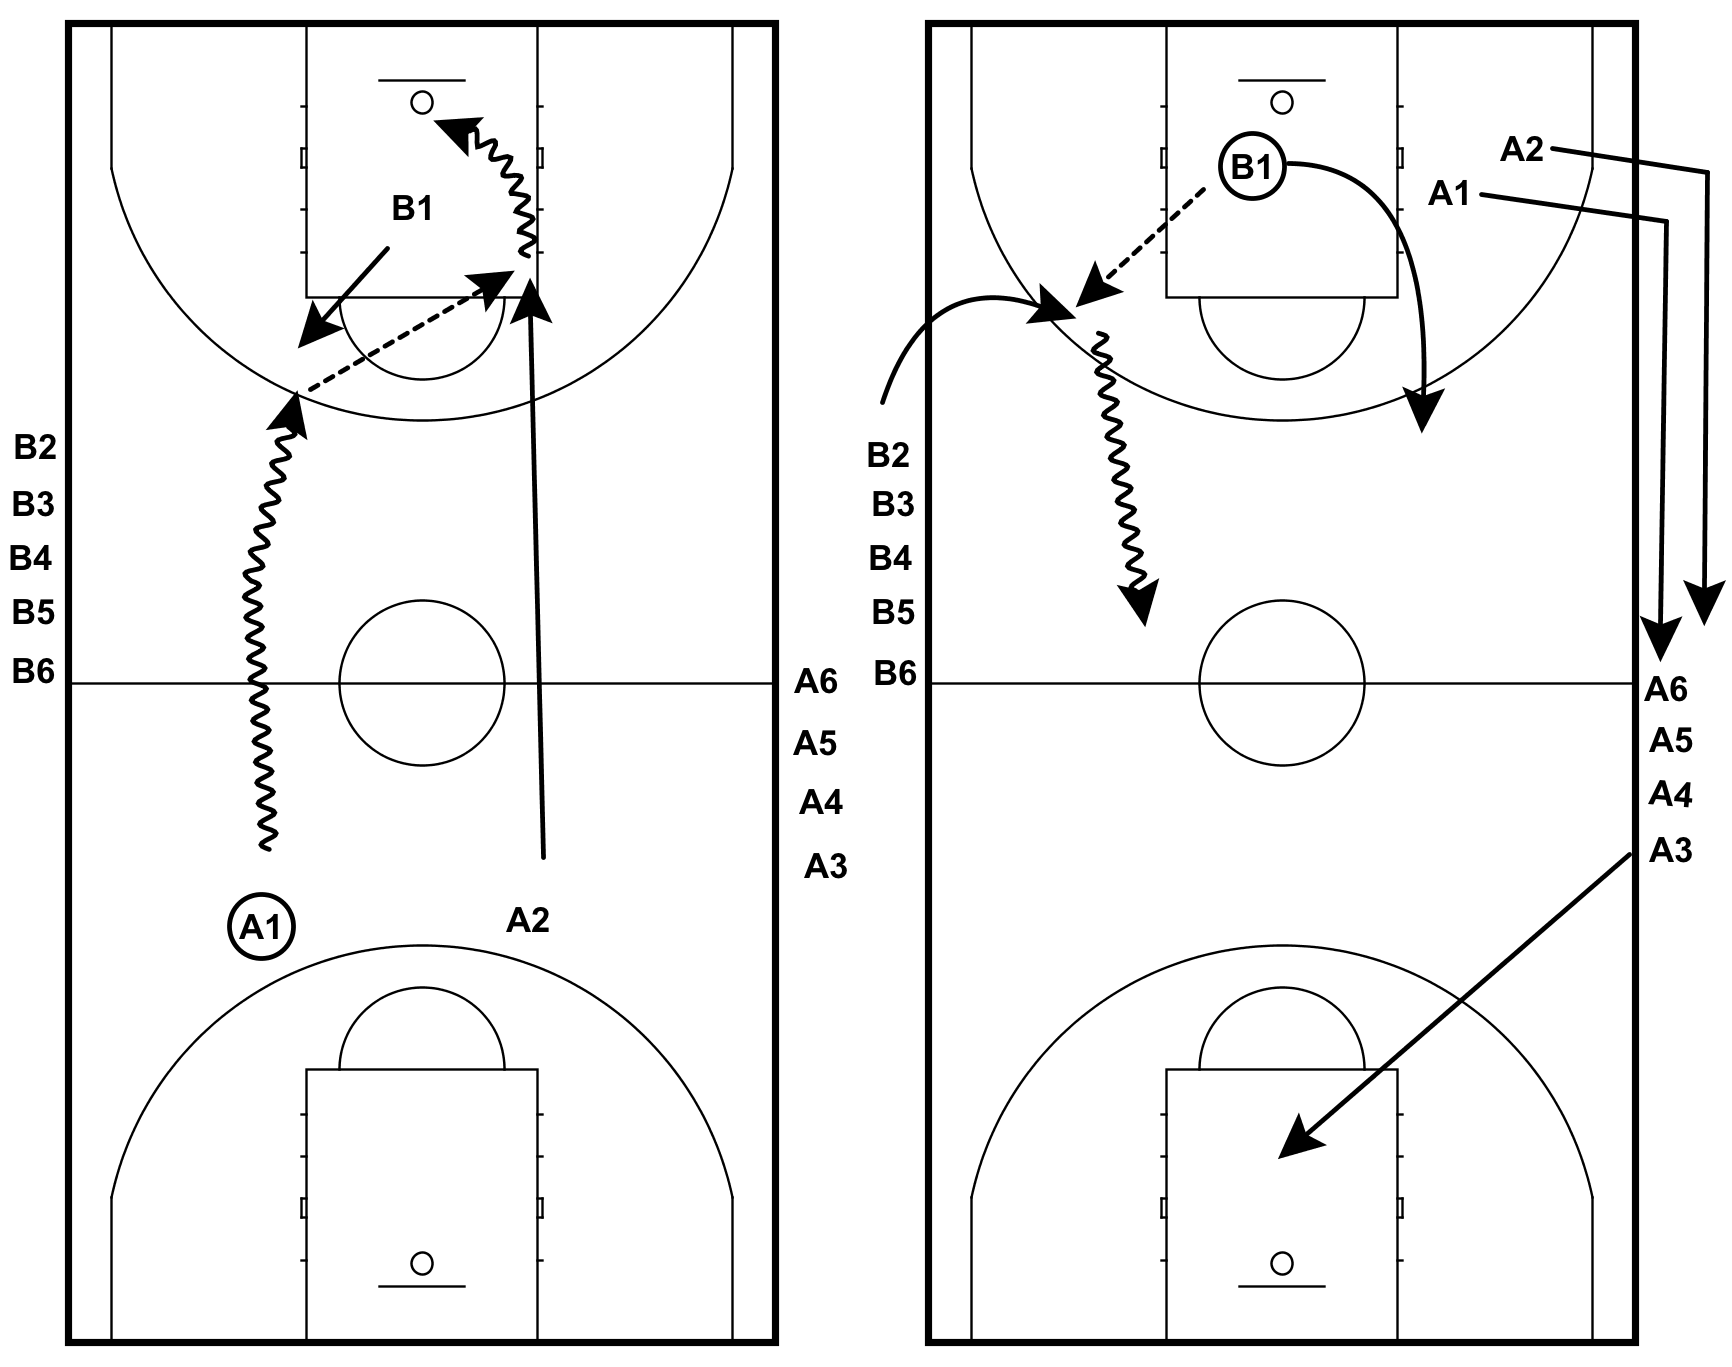 drills-finishing-at-the-rim-2-on-1-continuous